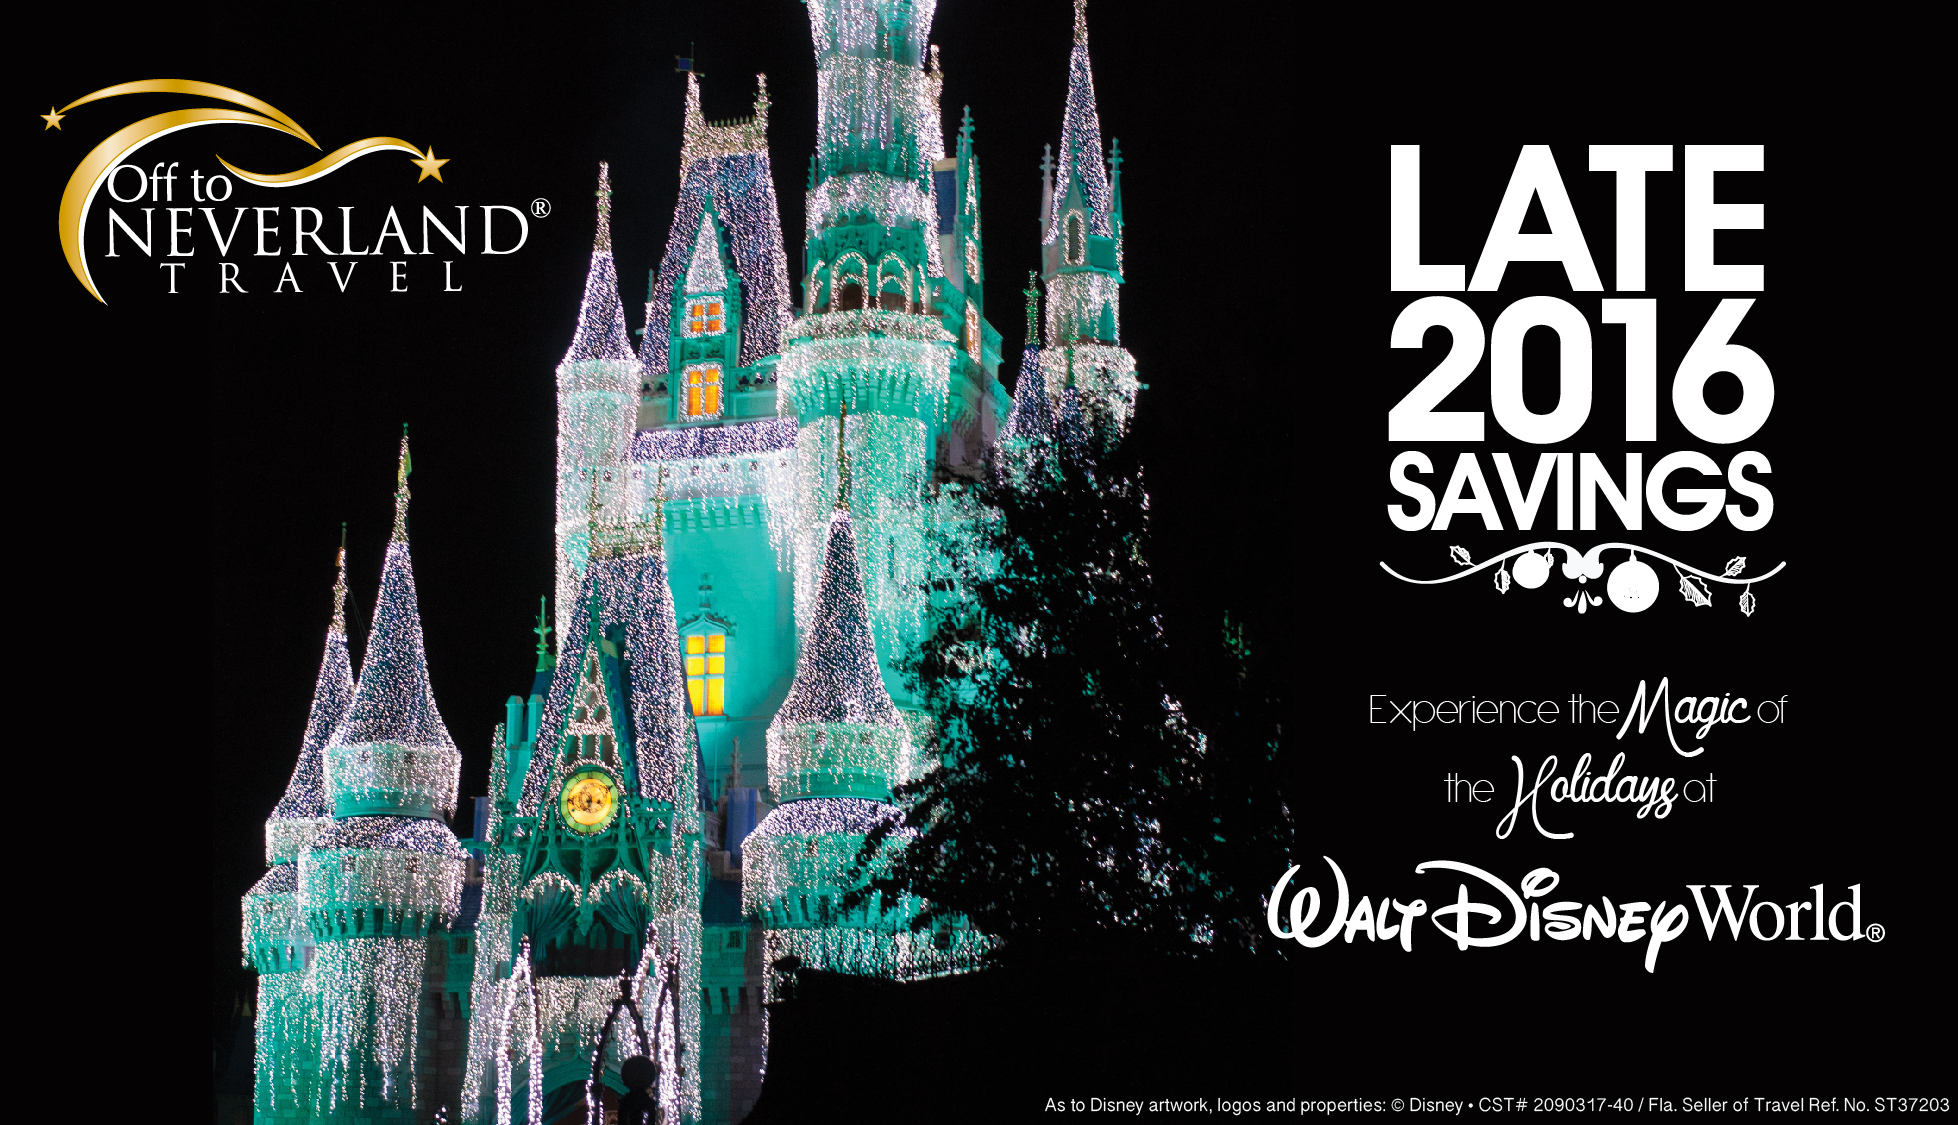 Late 2016 Walt Disney World Savings